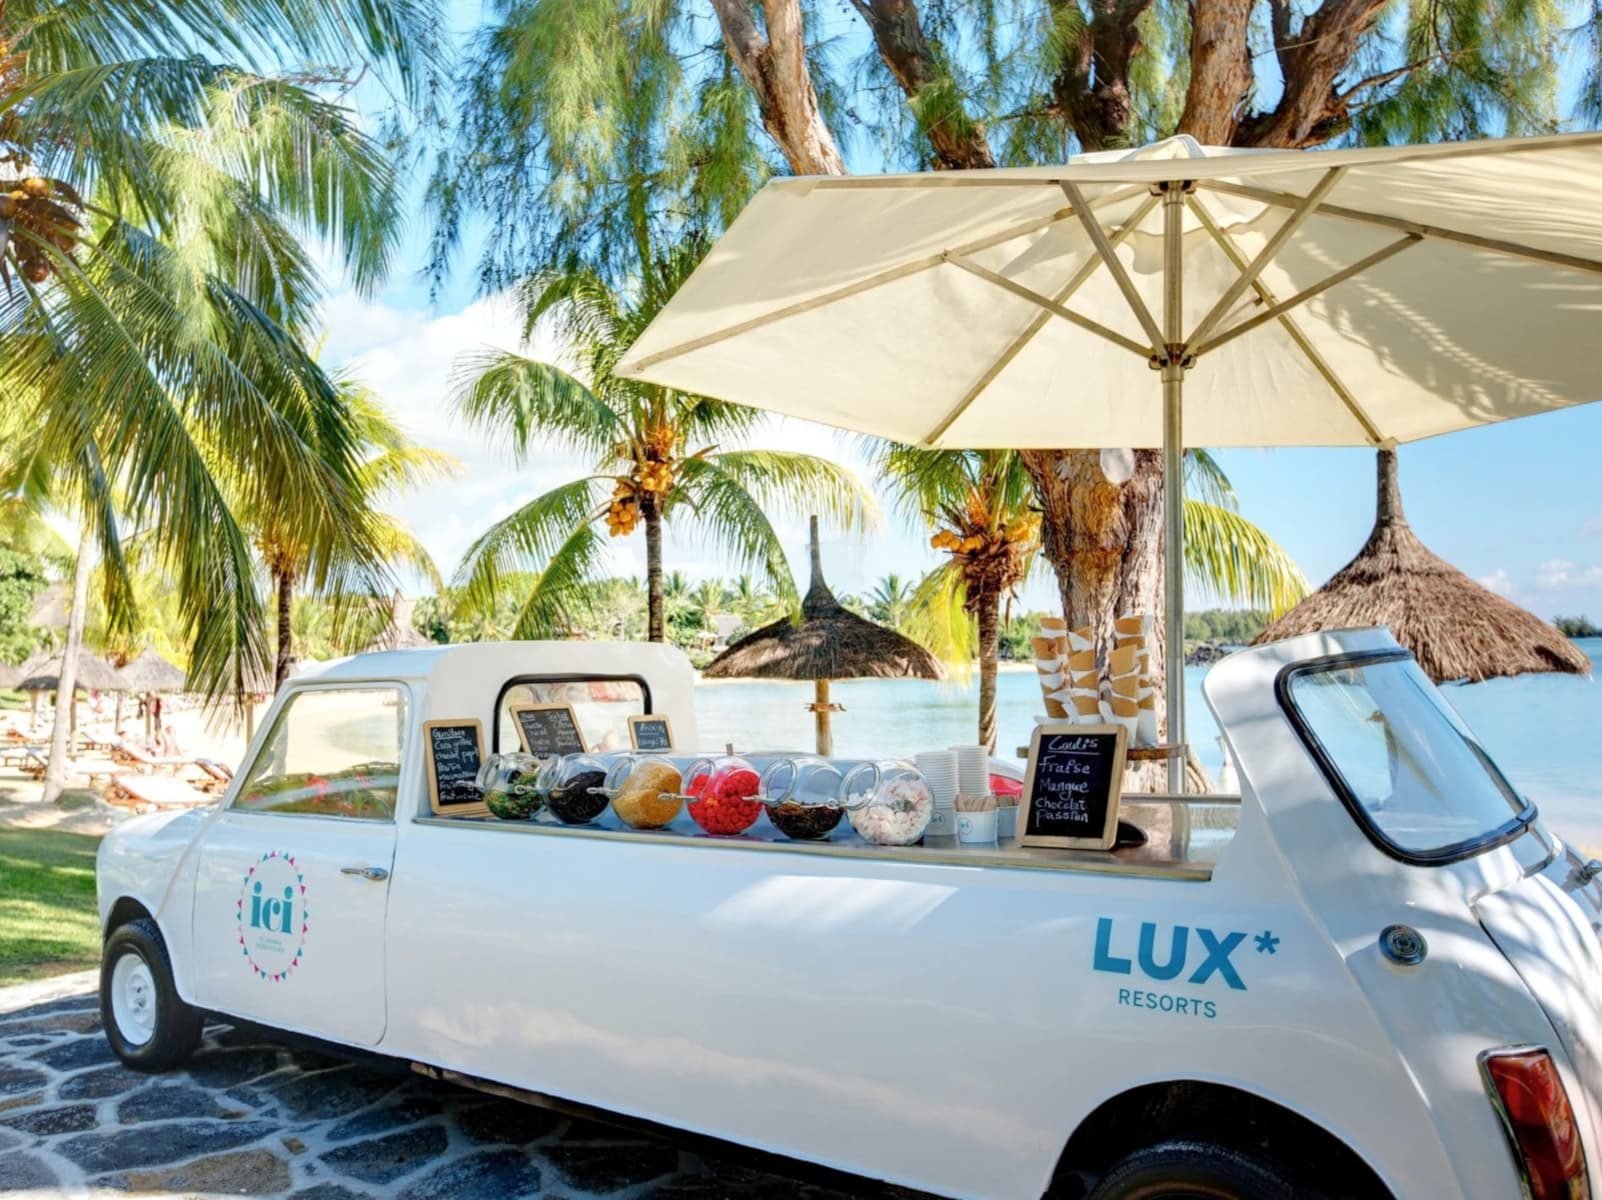 LUX* Grand Gaube - one of the best tennis resorts for your tennis holidays in Mauritius